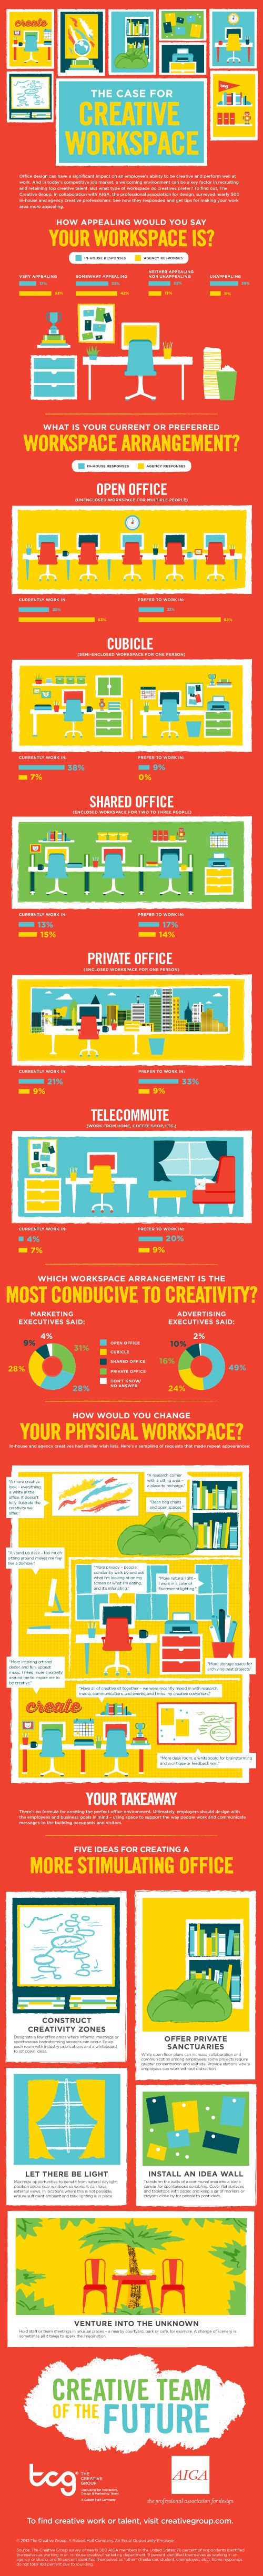 great options for creating a creative comfortable workspace base group creative office